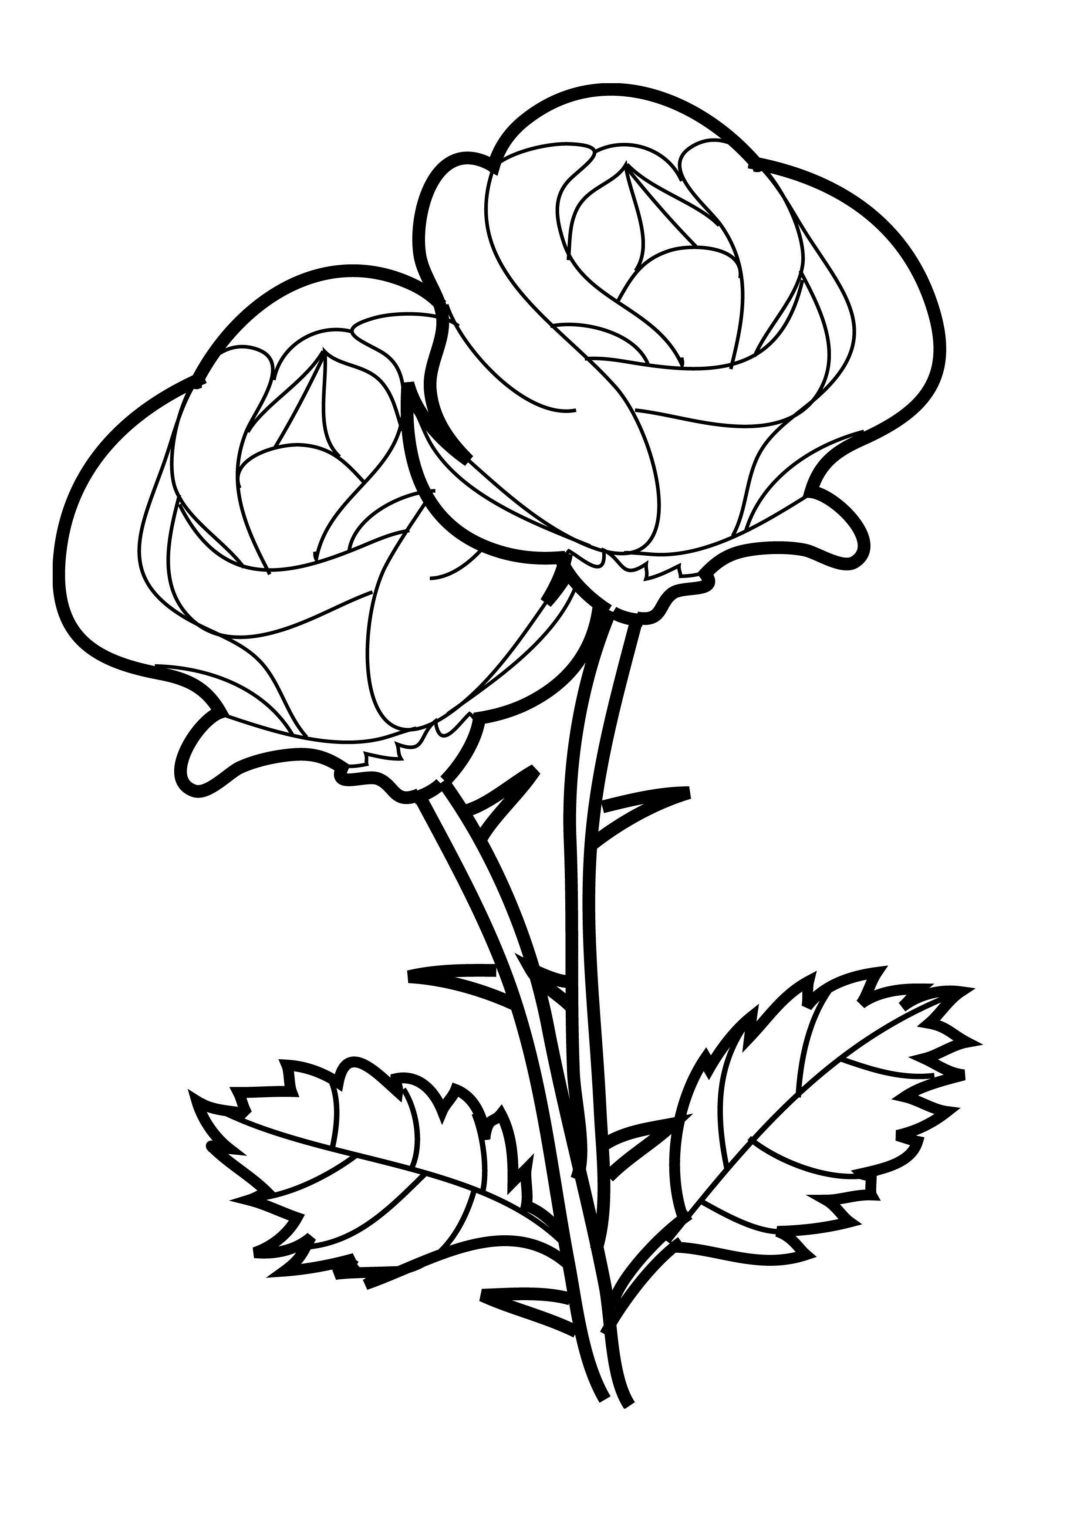 Flower Coloring Pages Rose Coloring Pages Flower Coloring Pages